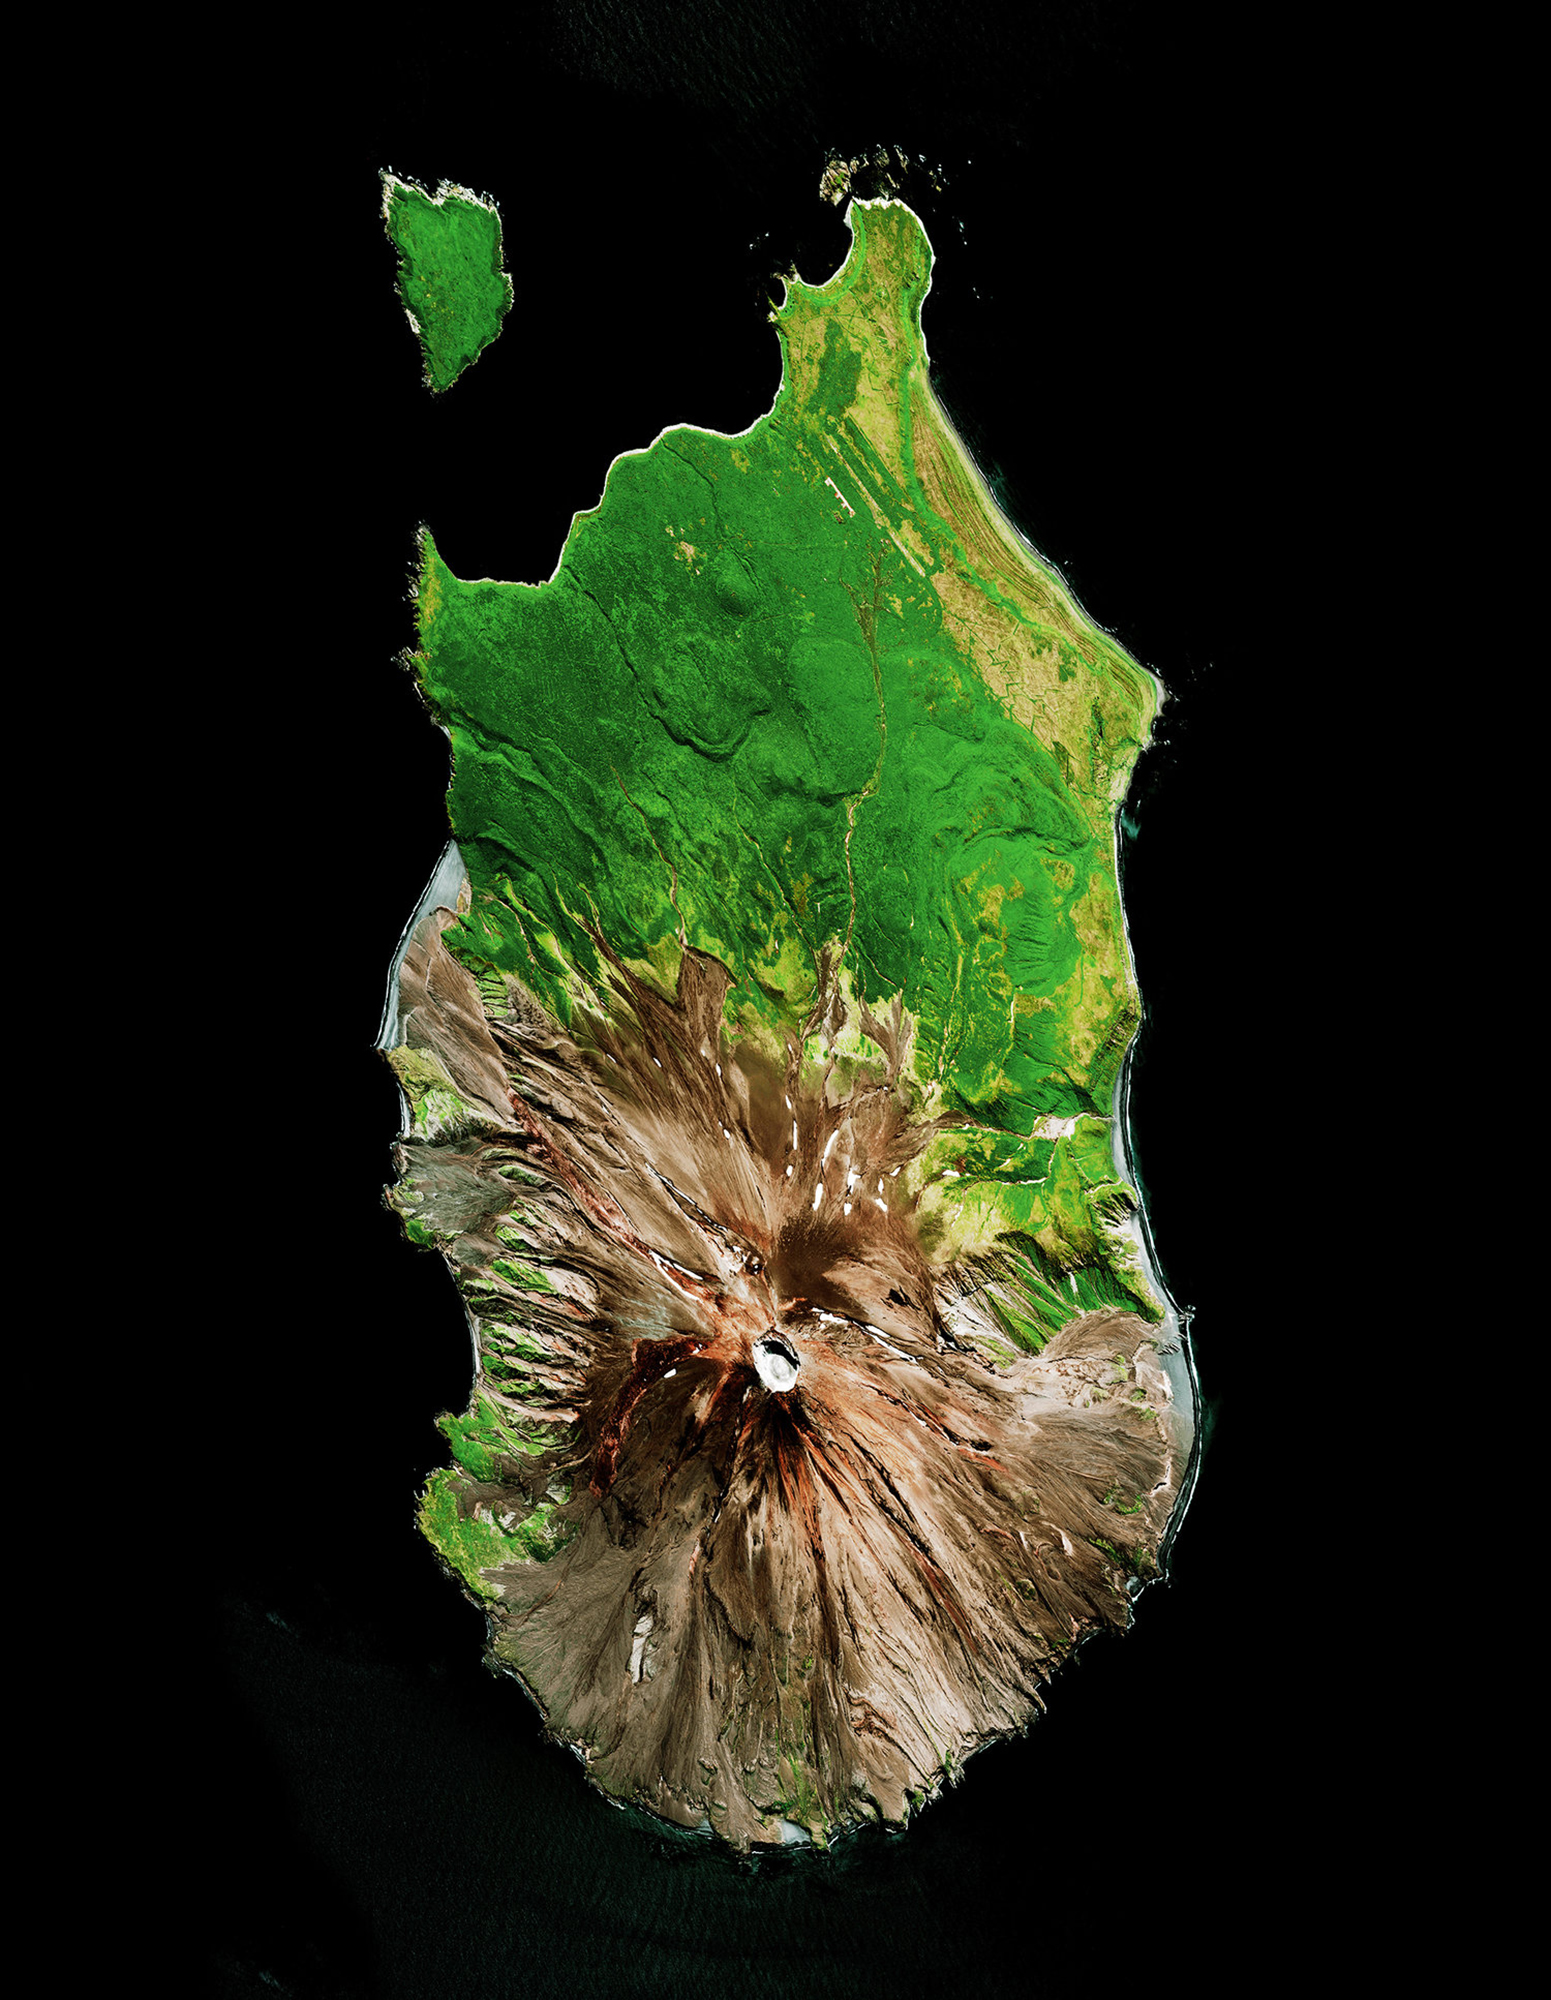 """Sarychev Peak is located on Matua Island in the Kuril Islands of Russia. When the volcano erupted on June 11, 2009, the expulsion of debris caused significant interruption to air traffic between east Asia and North America. The eruption was also so great that astronauts aboard the International Space Station were able to photograph the plumes of ash and smoke rising from its cone, as the force of its shock waves dispersed all clouds covering the area.  48°05'26.9""""N 153°11'59.0""""E  Source imagery: DigitalGlobe"""